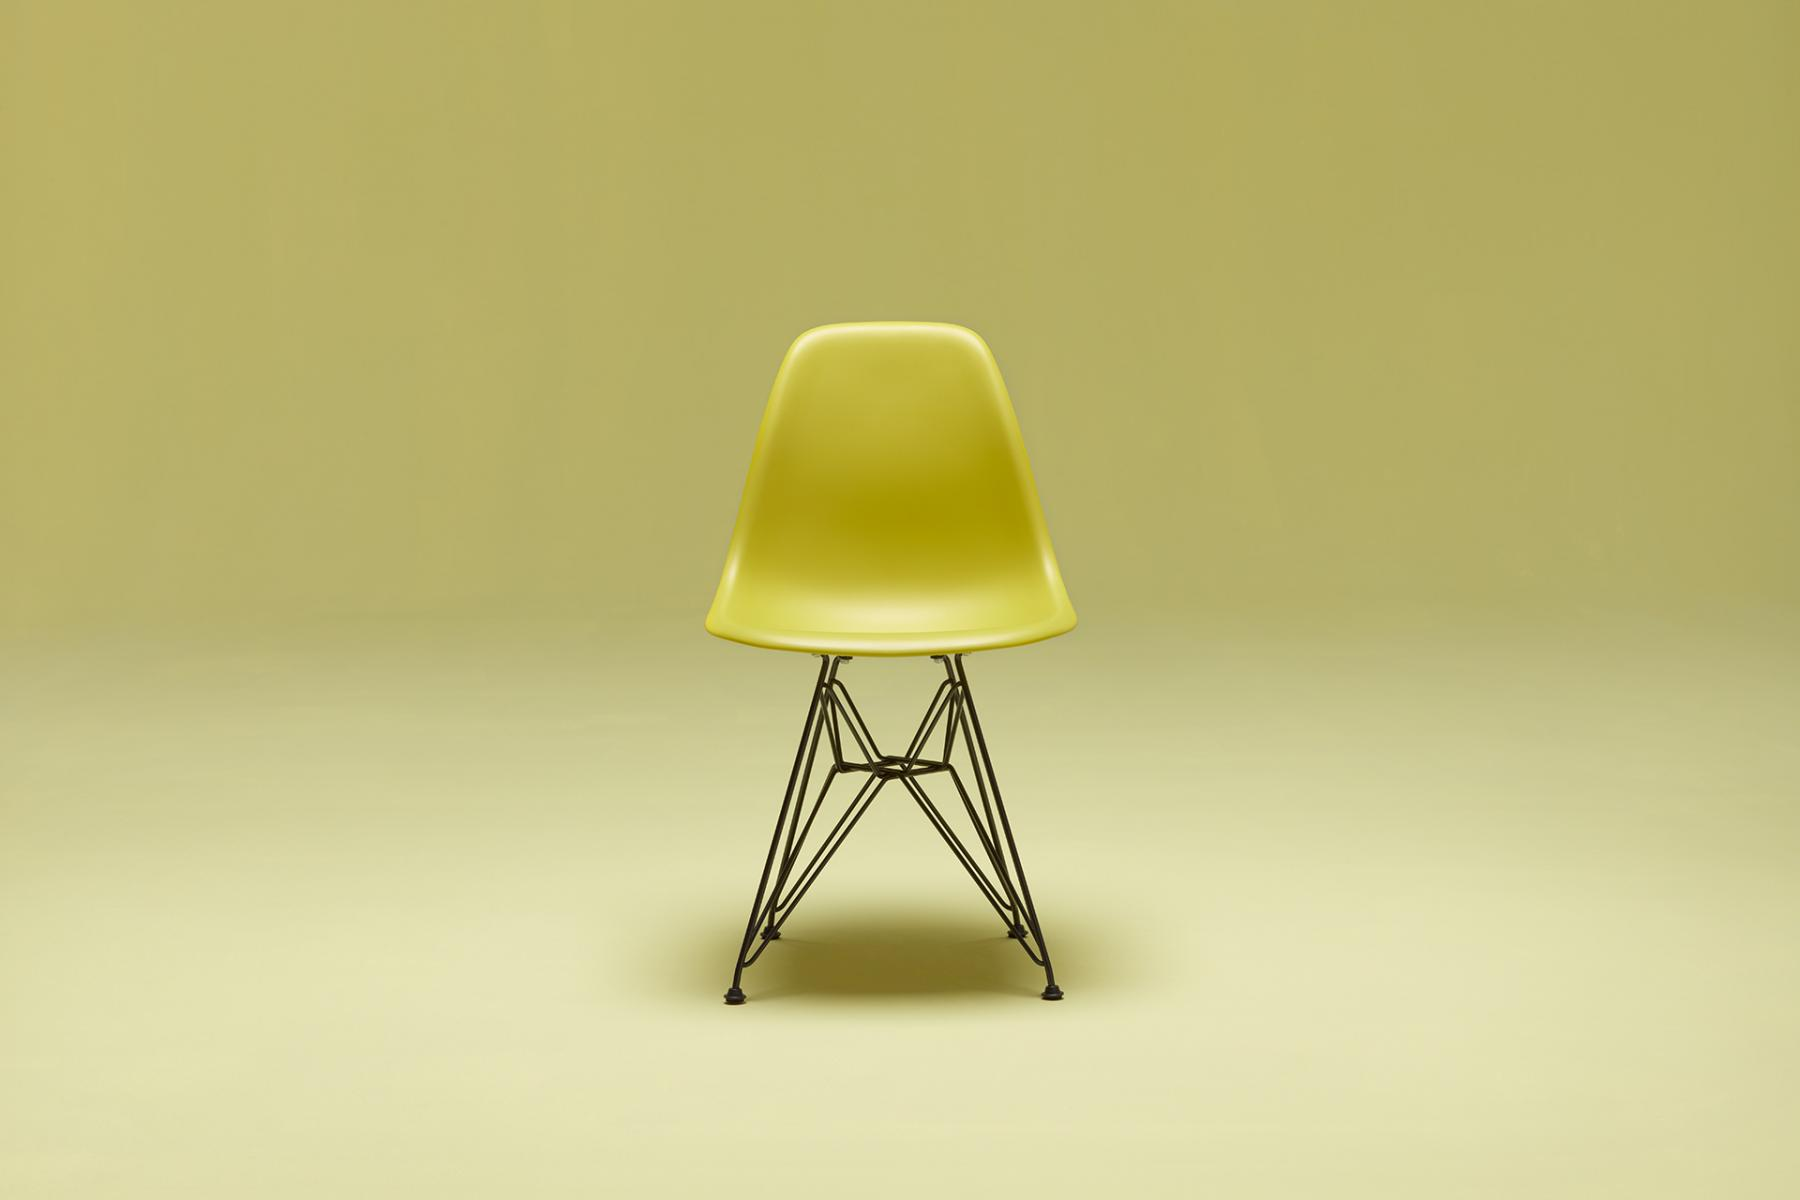 Top hat chair light blue furniture realm - Eames Plastic Side Chair Designed By Charles Ray Eames Ca 1950